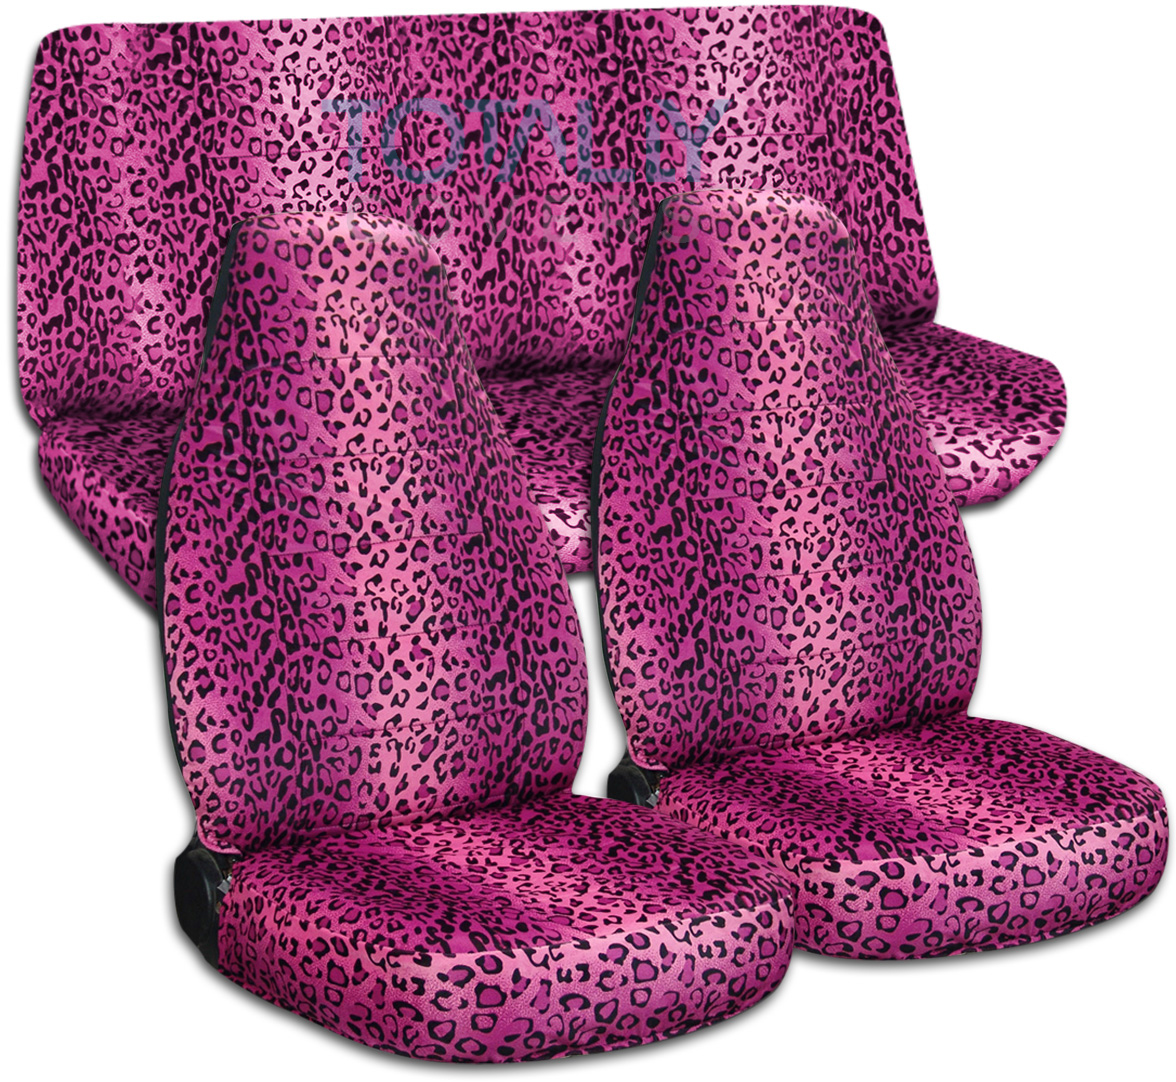 Hot Pink Leopard Print Car Seat Covers